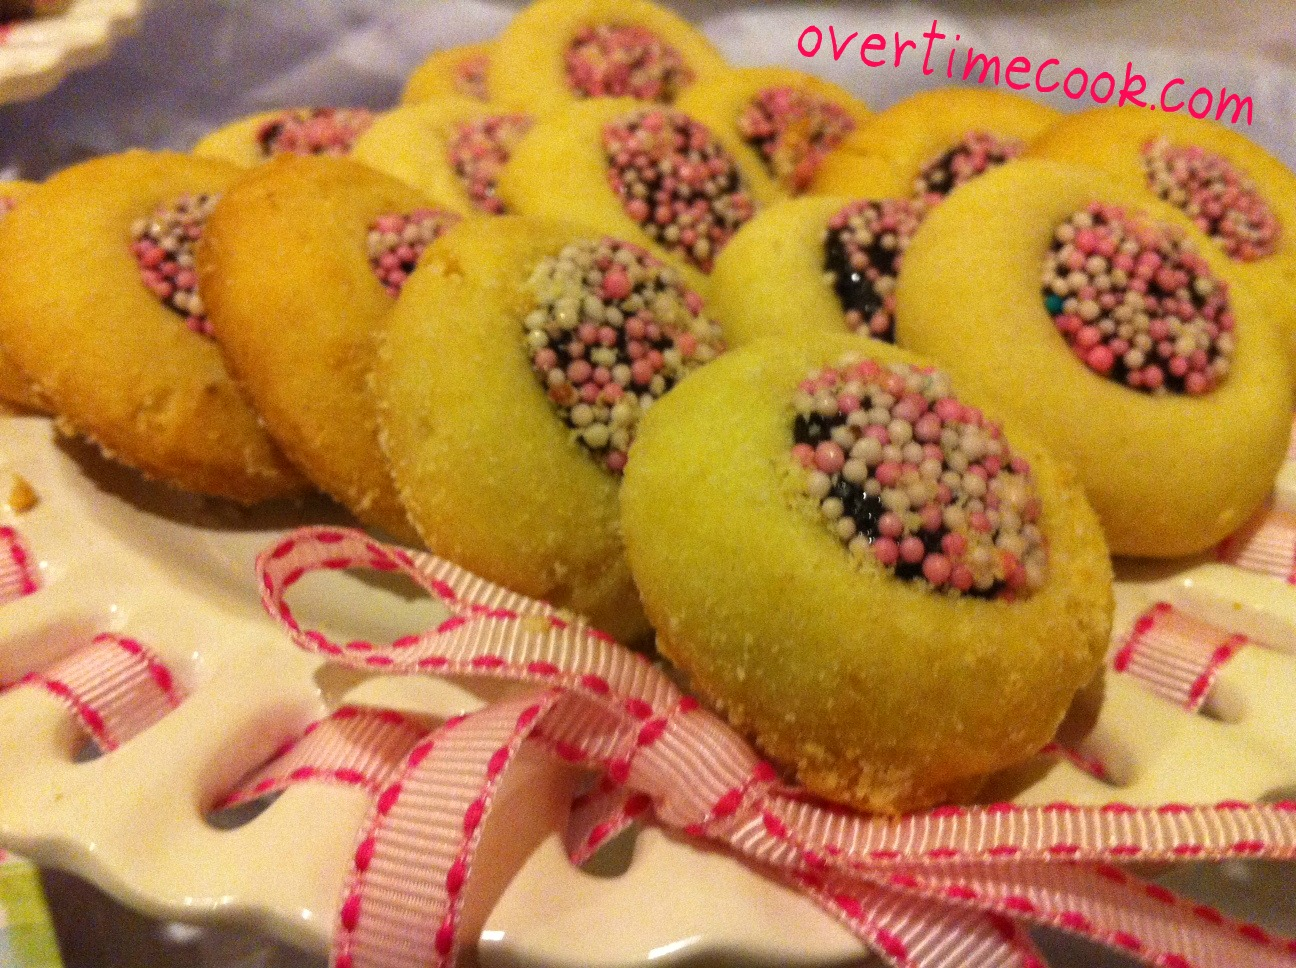 Bakery-Style Cookies Recipe: http://overtimecook.com/page/3/